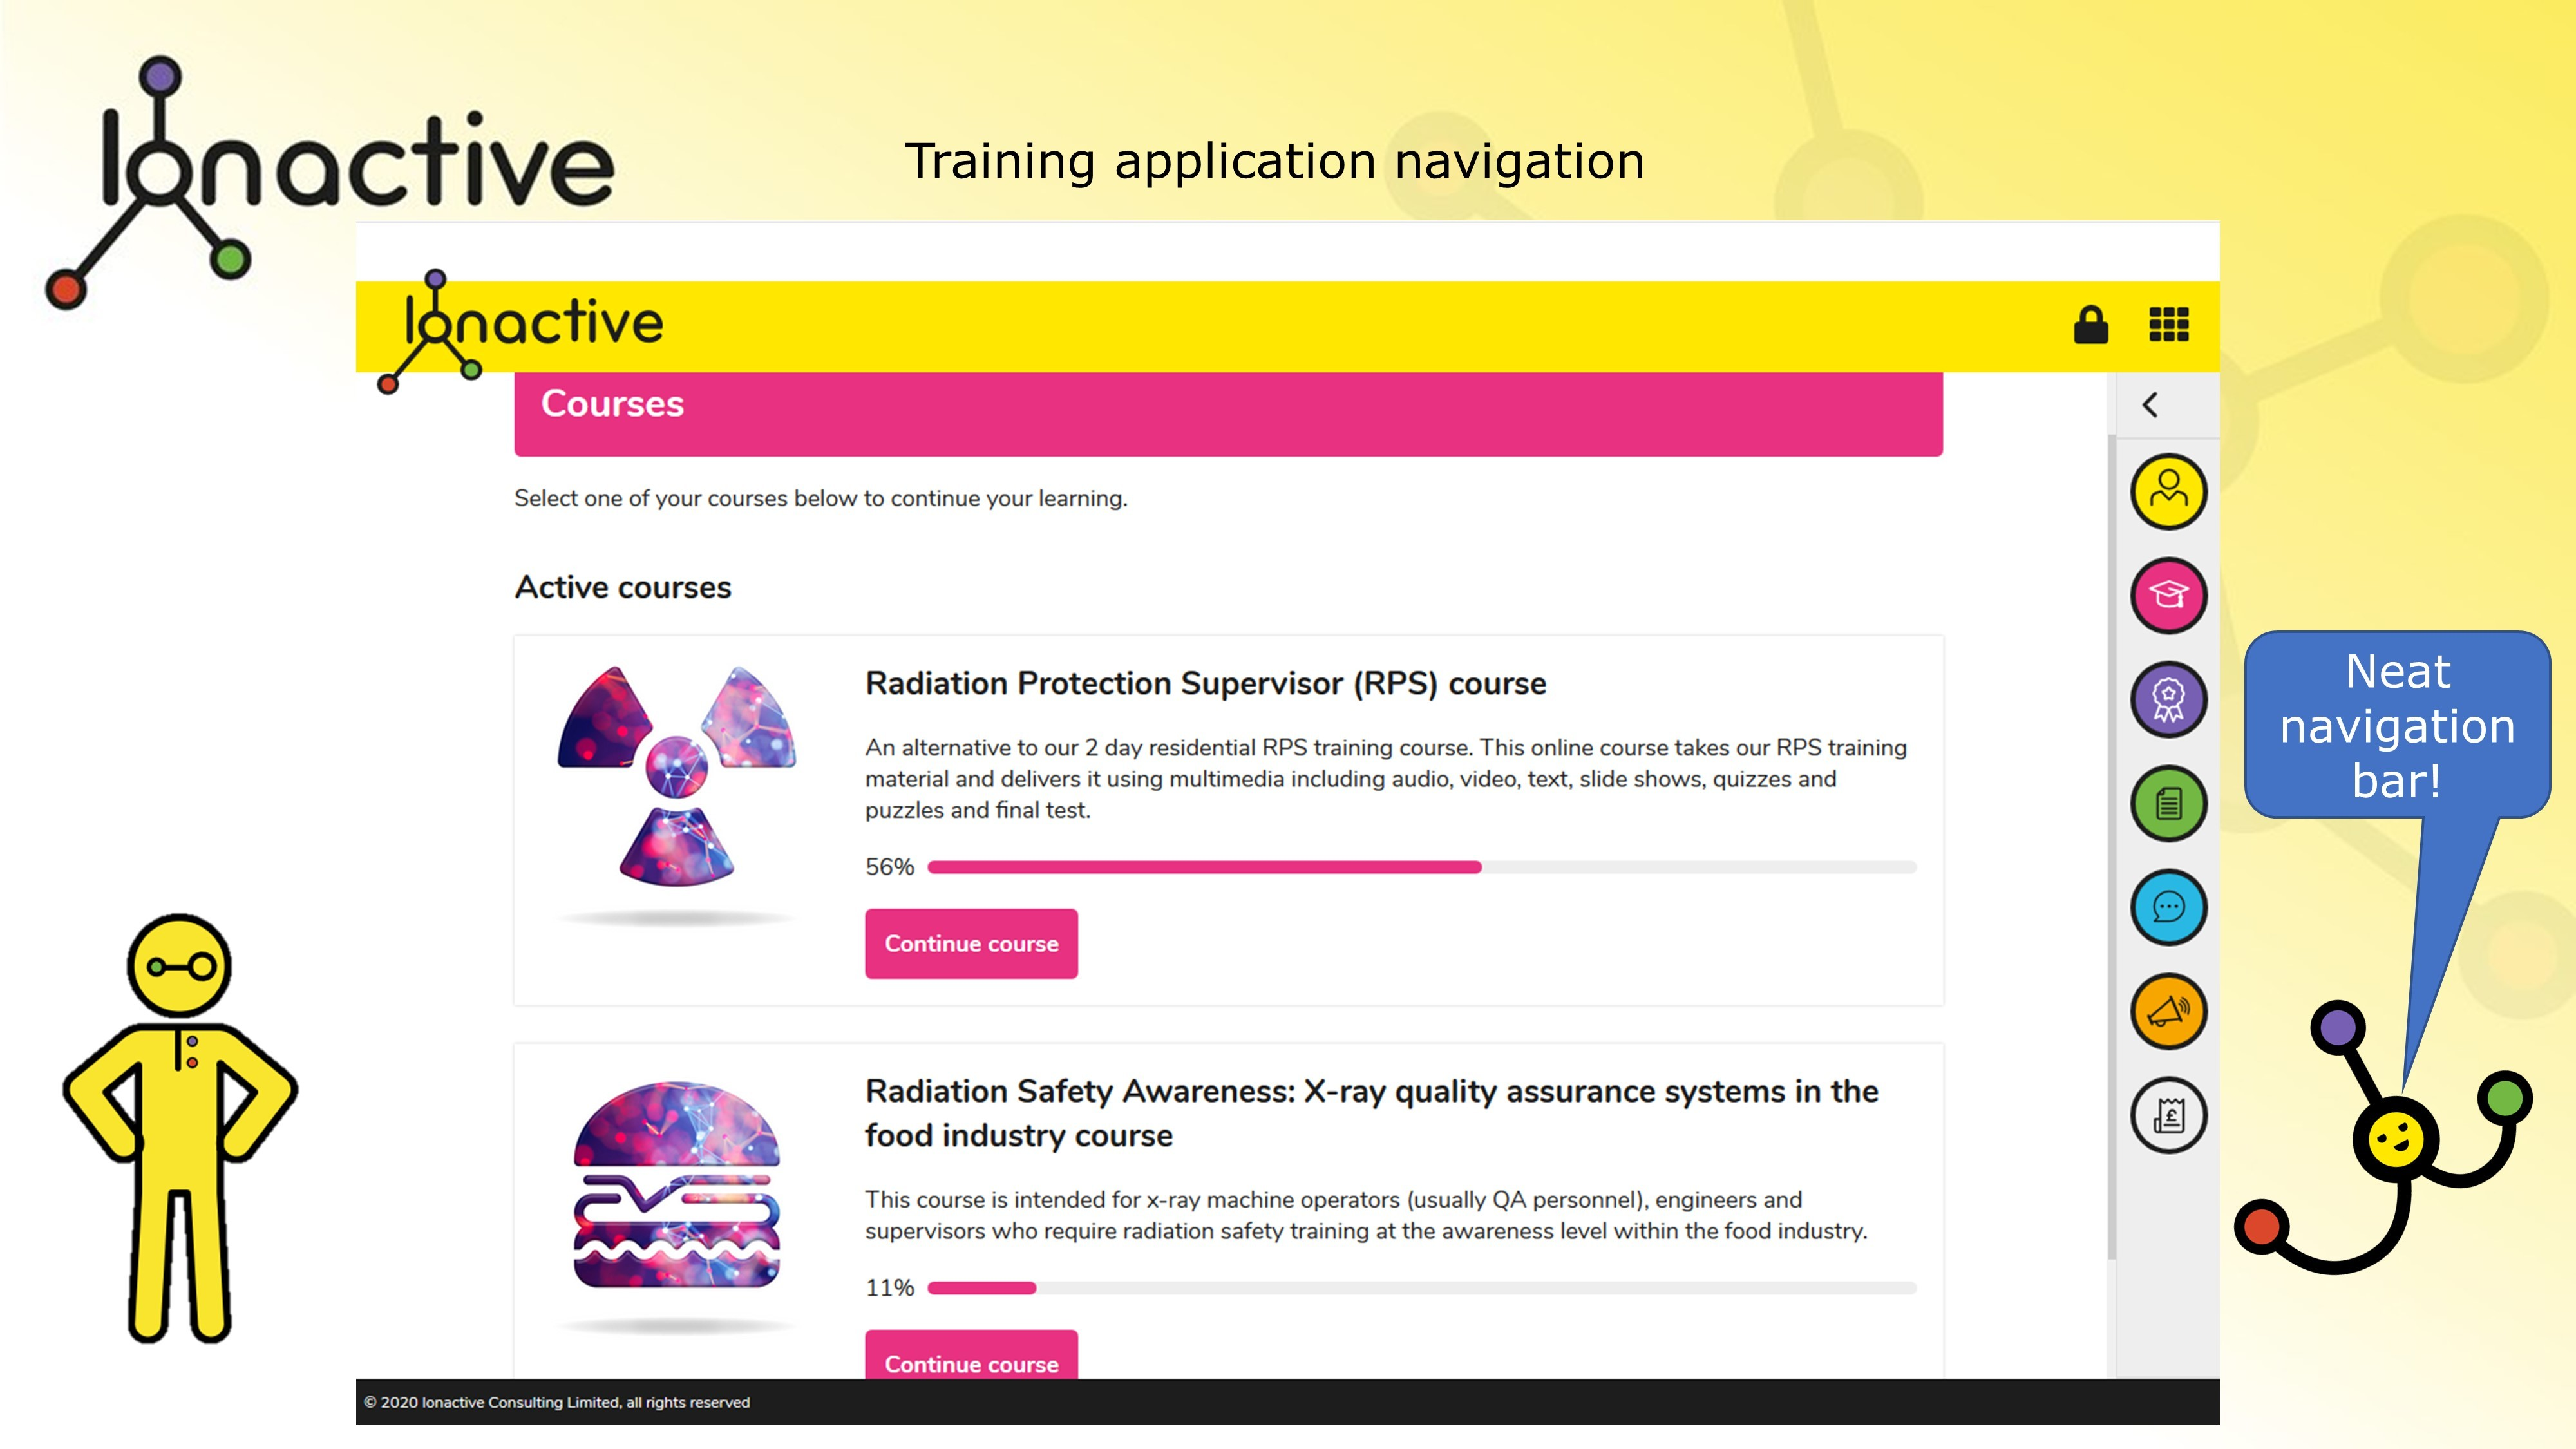 Training application navigation